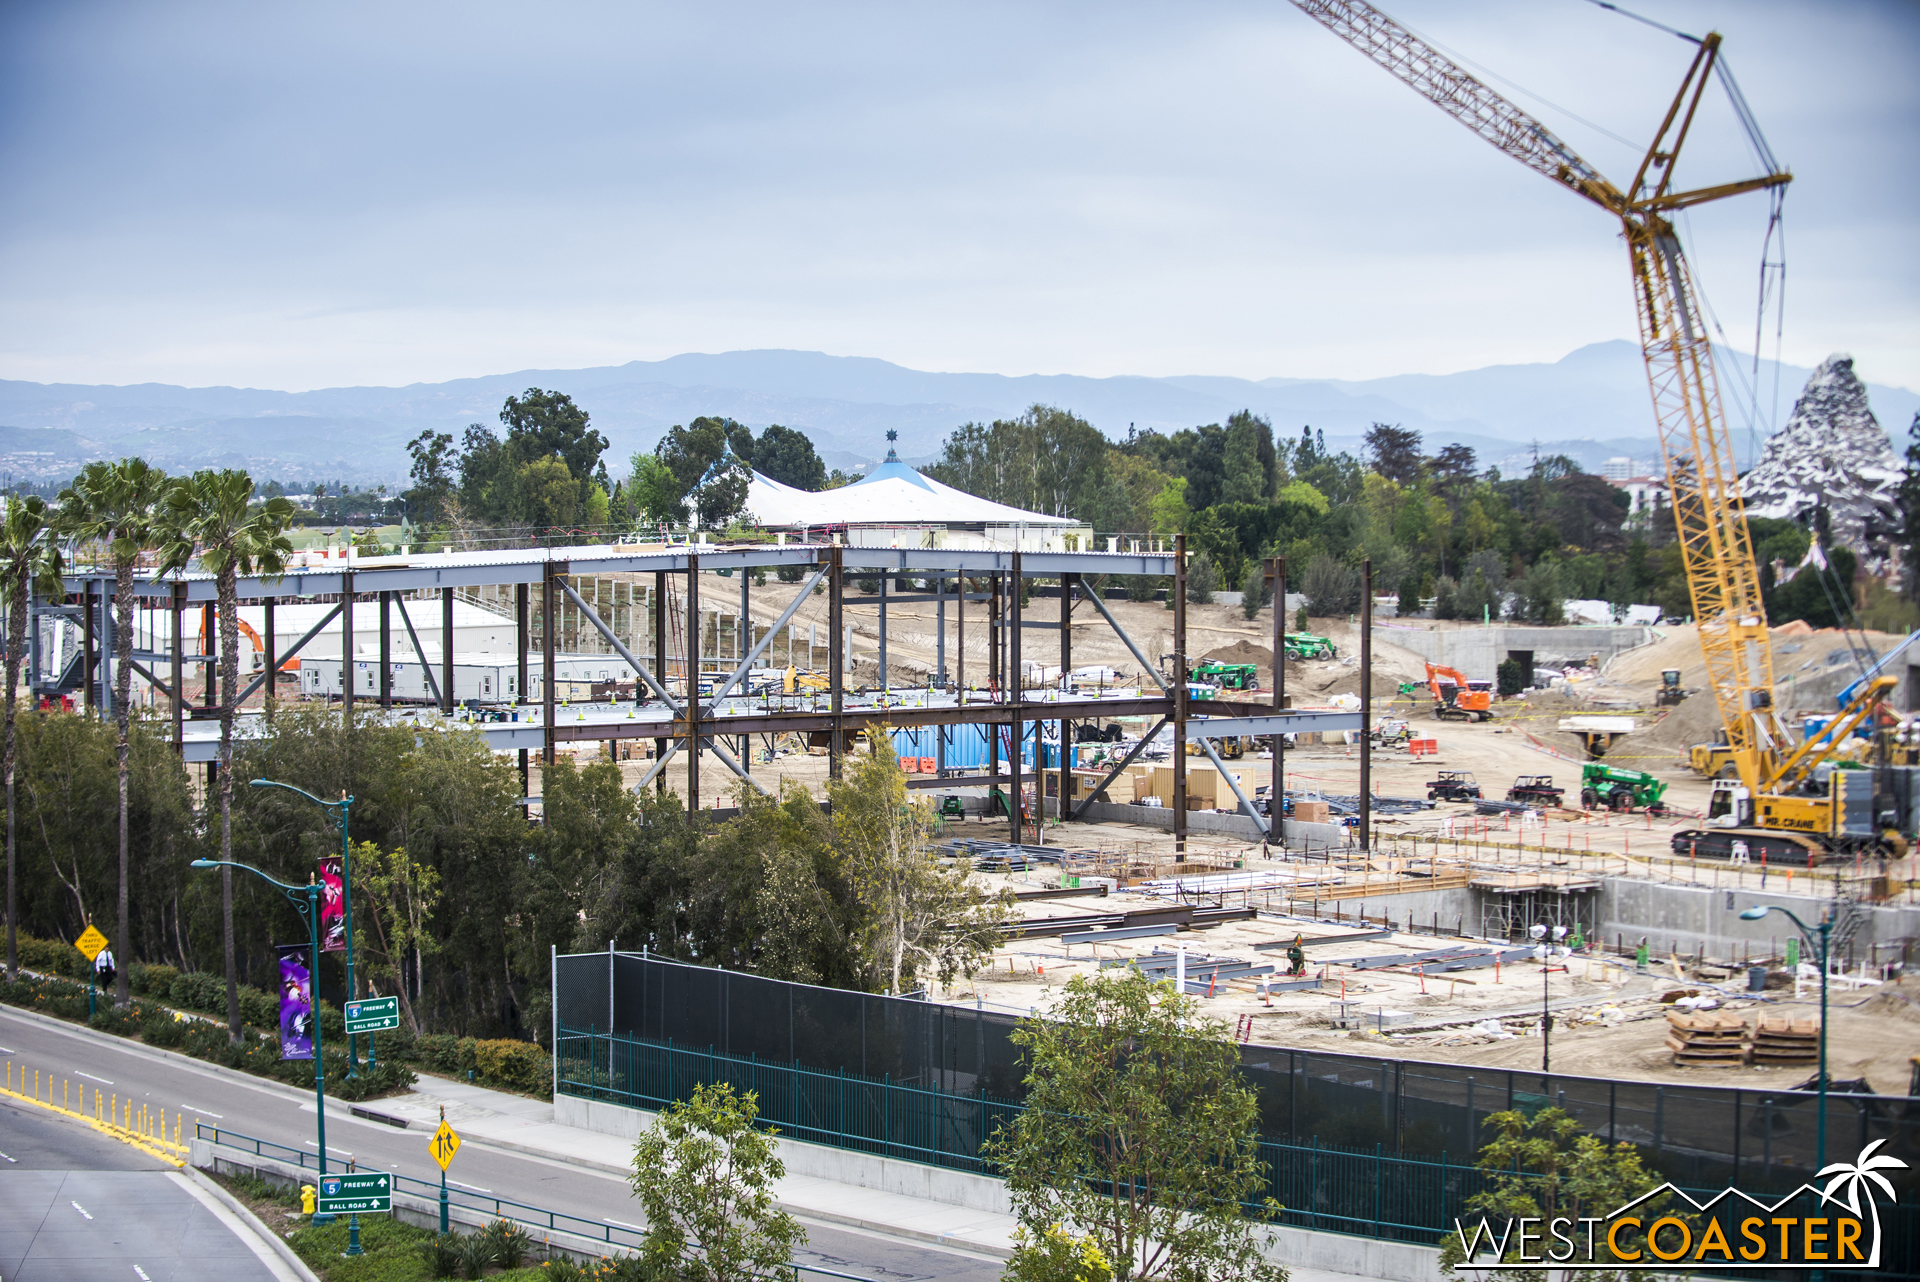 Meanwhile, additional steel for columns and braces appears to be advancing forward toward the trench area.